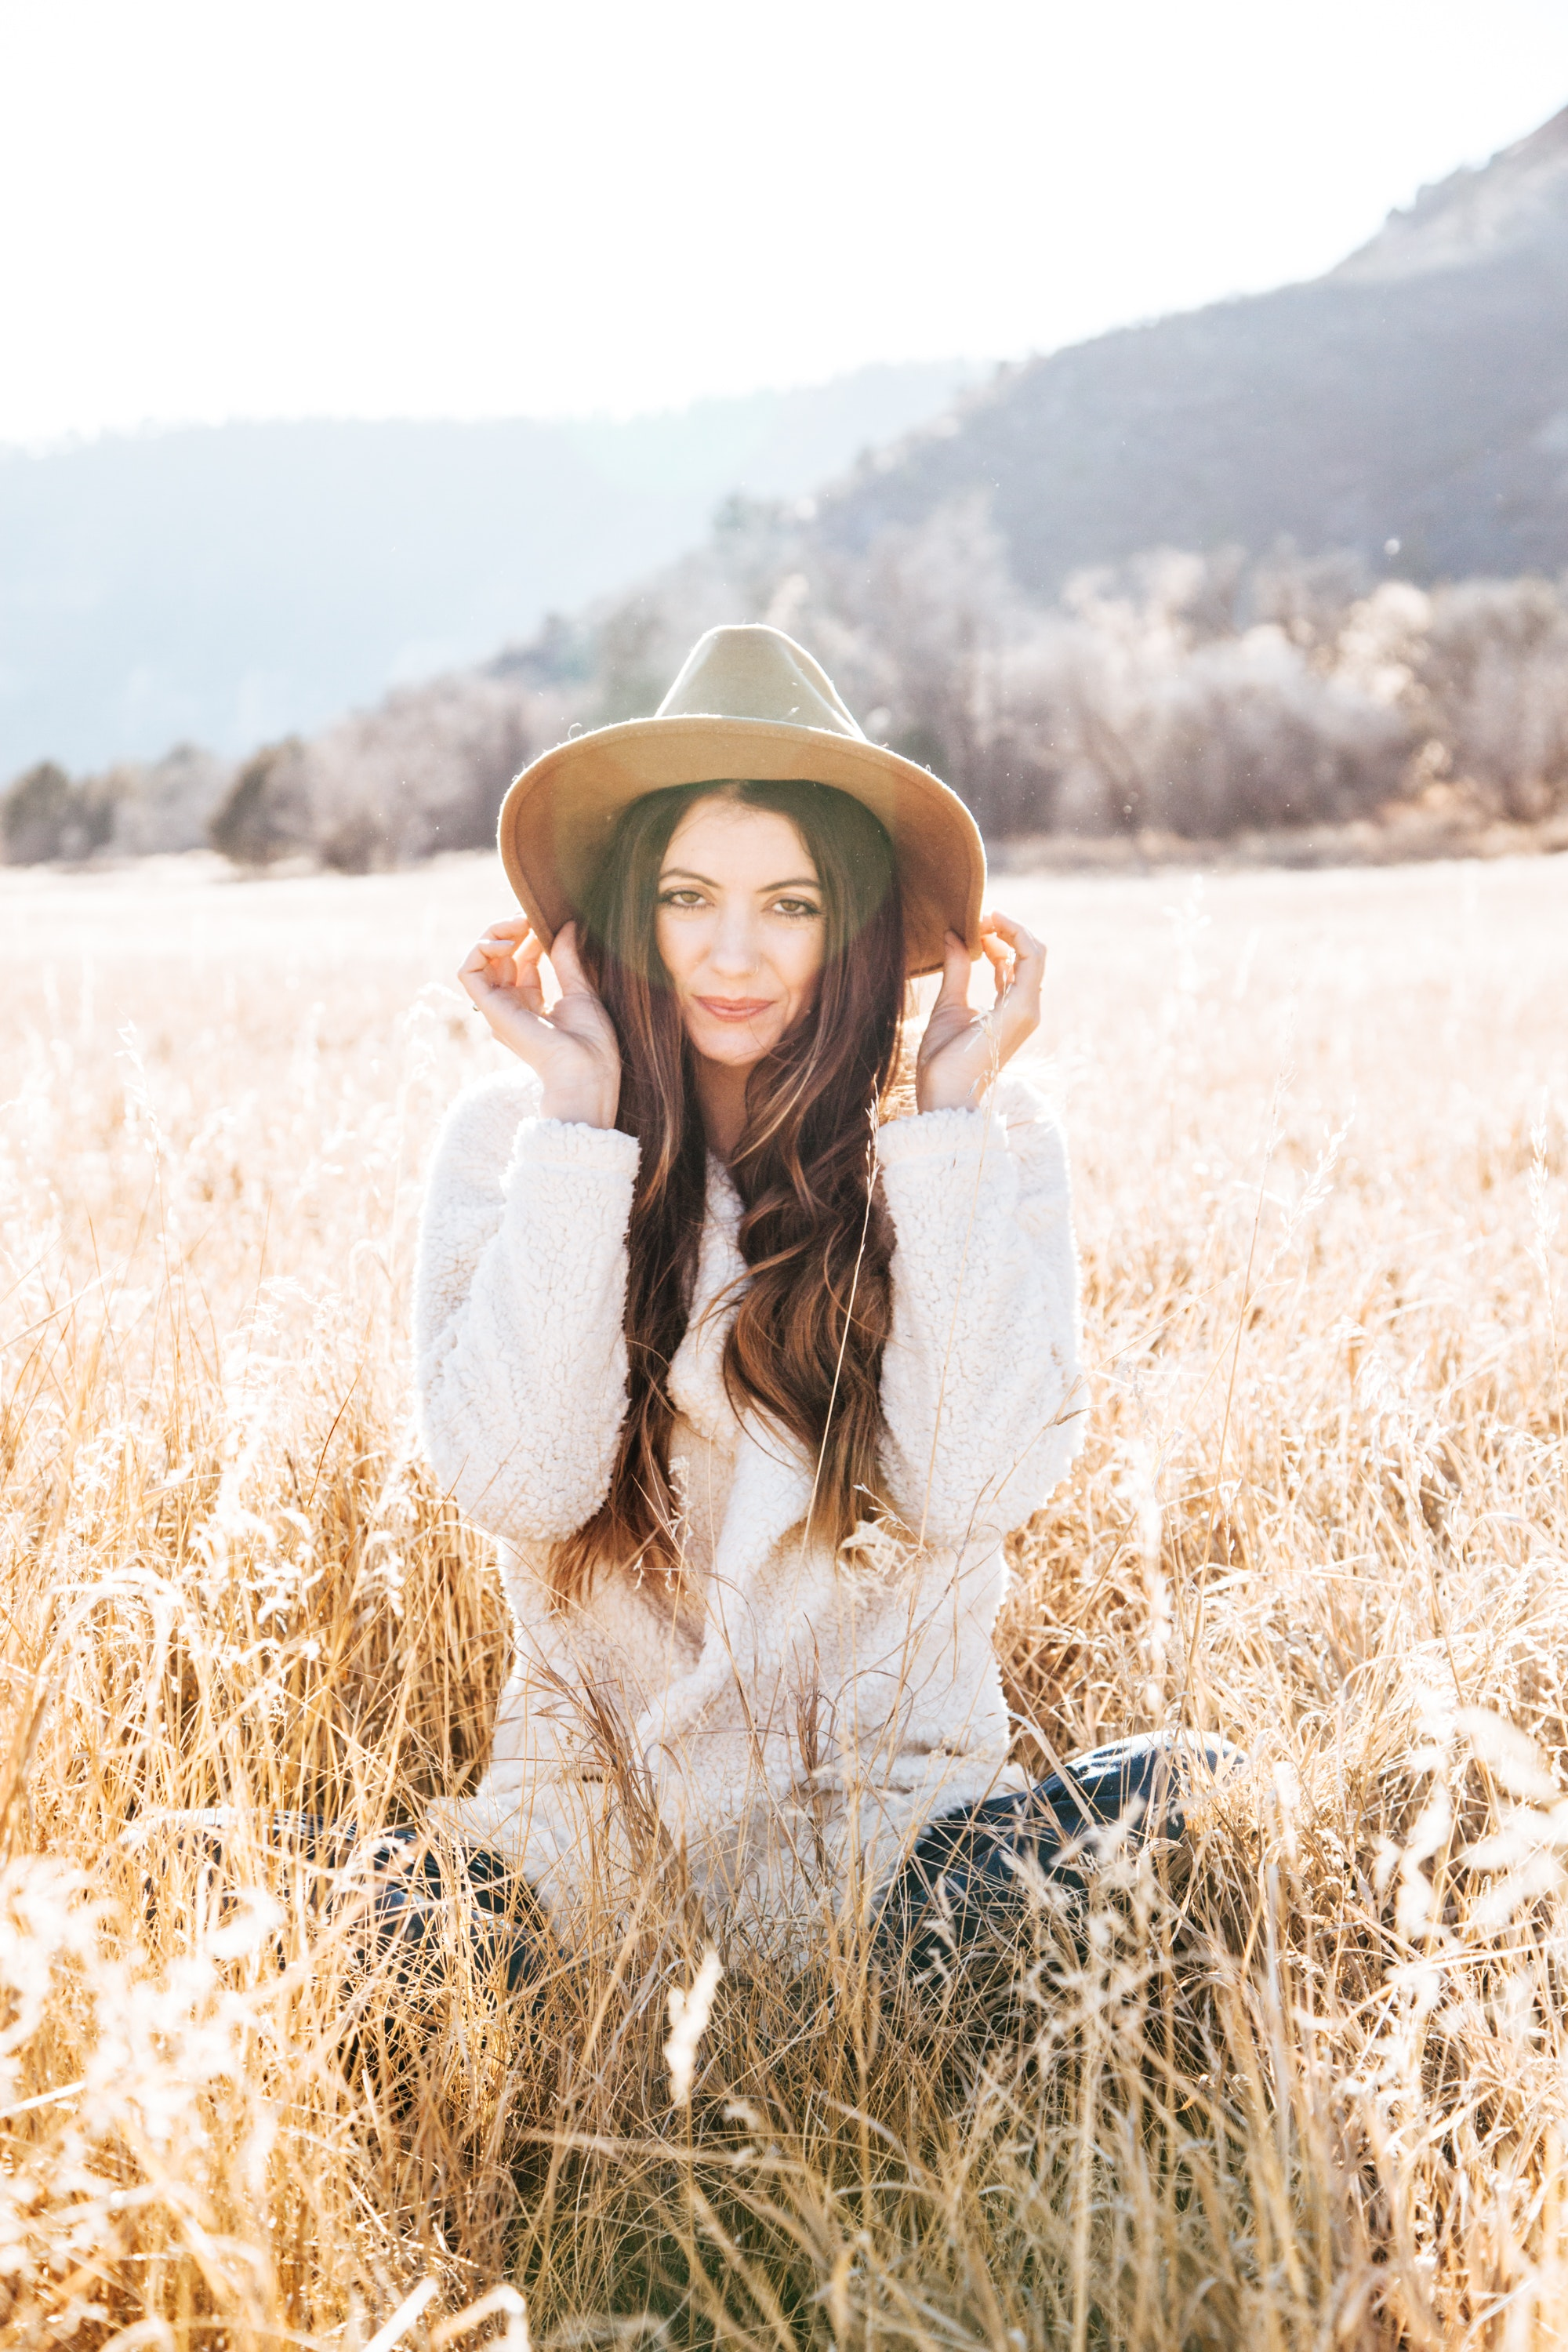 Photography of Woman on Brown Field, Barley field, Smile, Outside, Park, HQ Photo